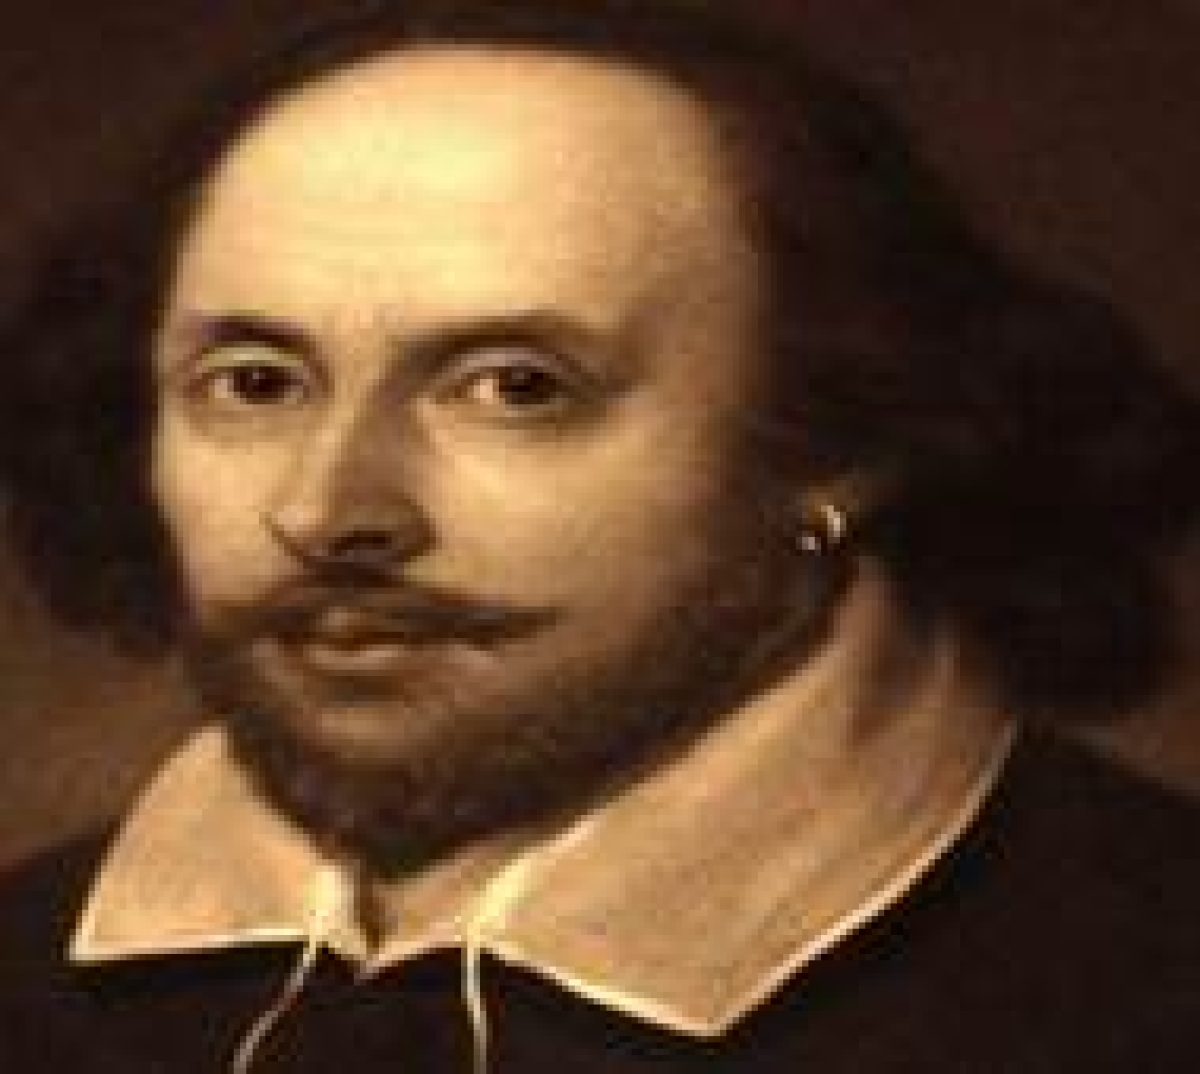 Shakespeare's skull could be missing from his tomb: Scientists